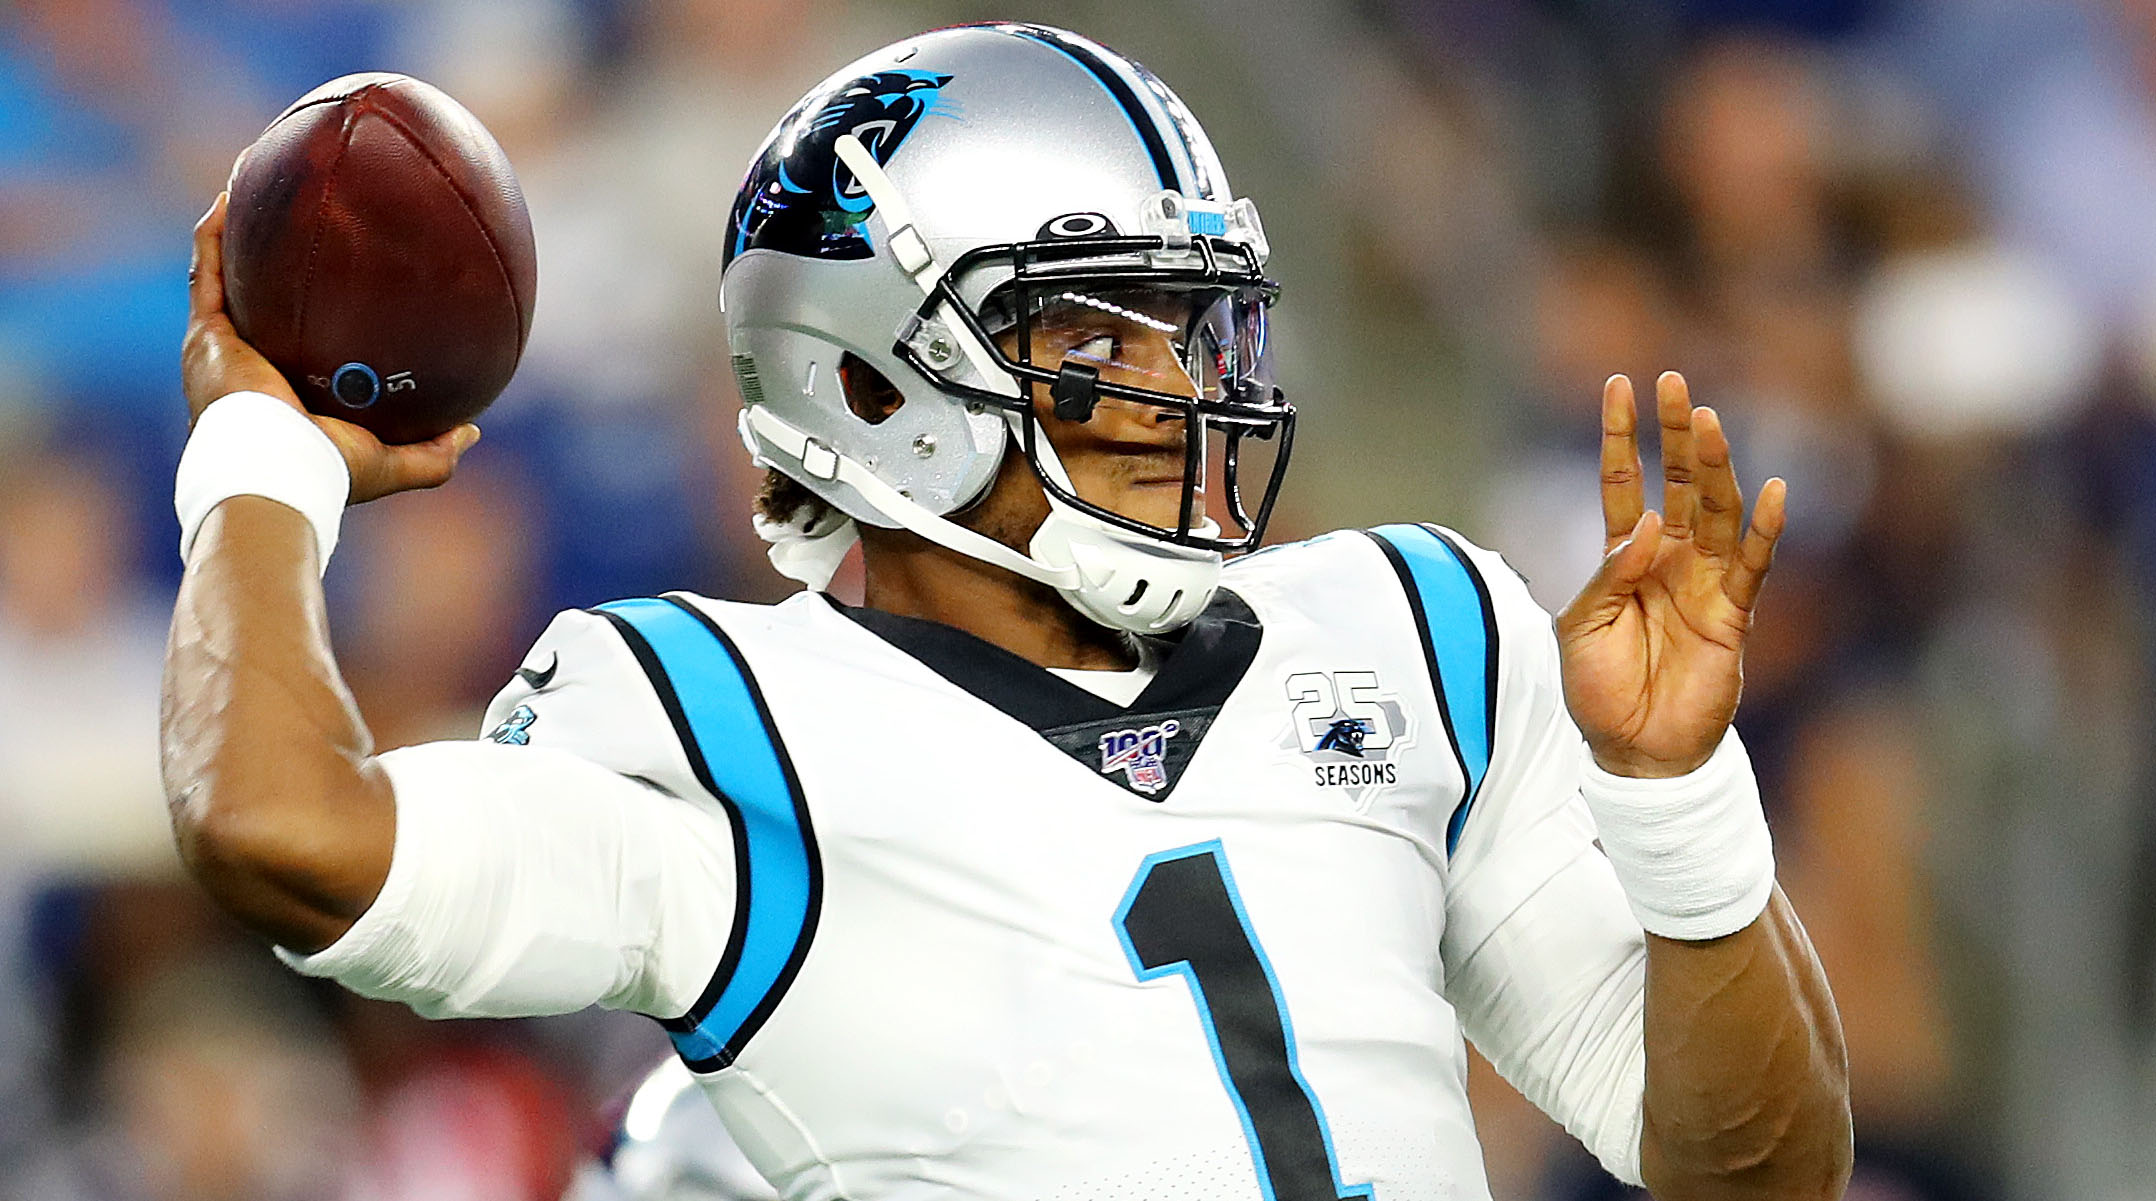 Panthers QB Cam Newton